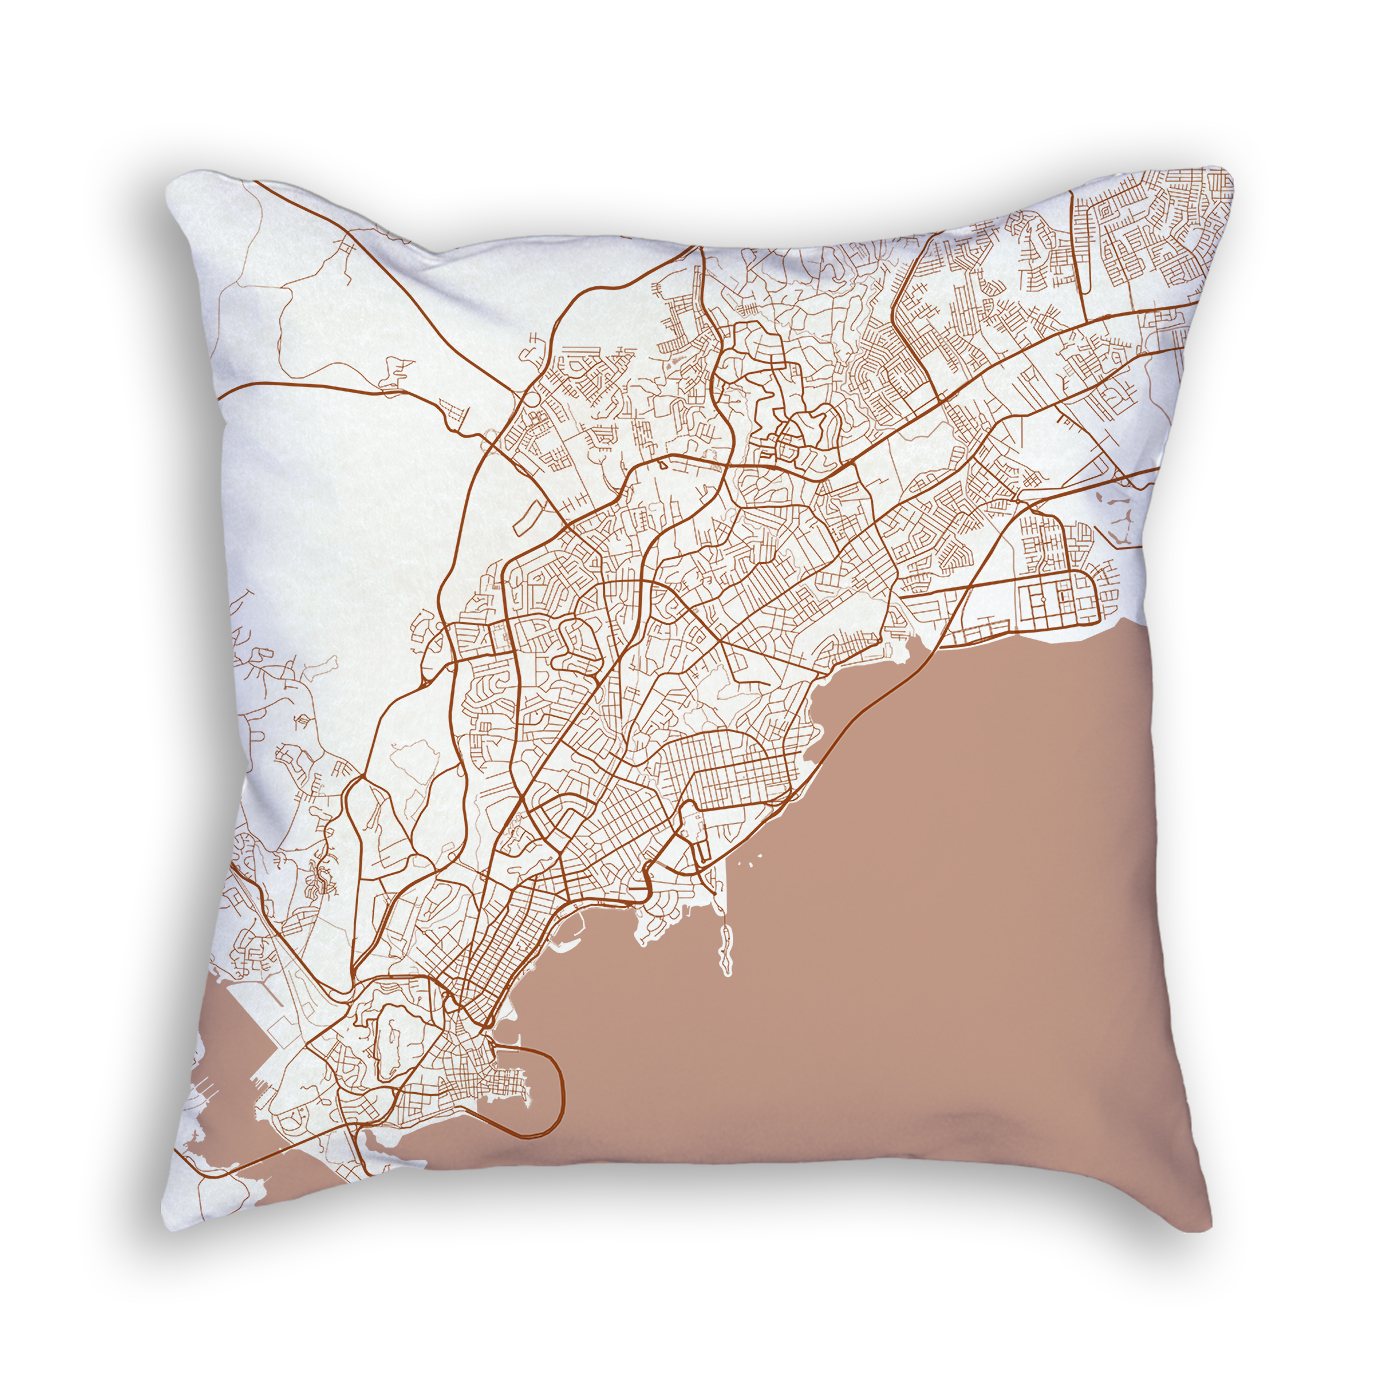 Panama City Panama City Map Art Decorative Throw Pillow